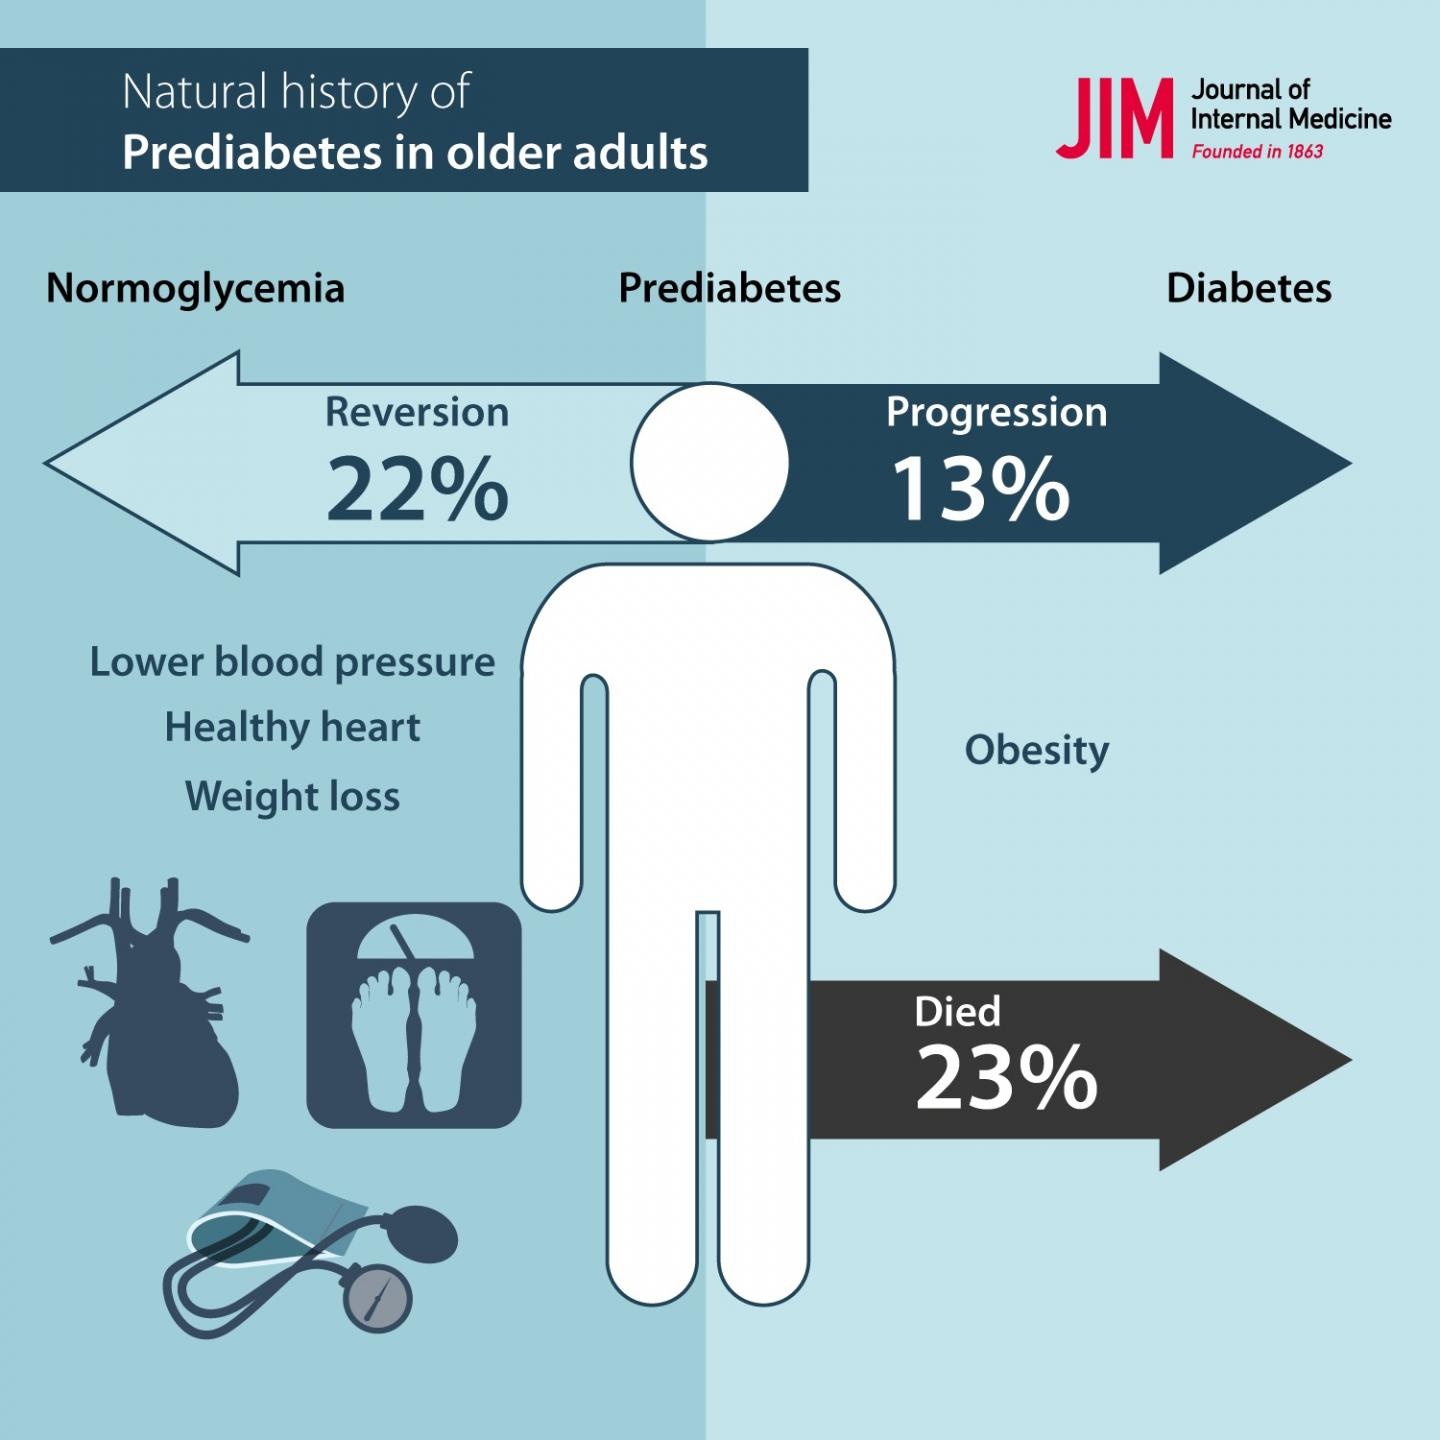 Study Follows the Health of Older Adults with Prediabetes Problems